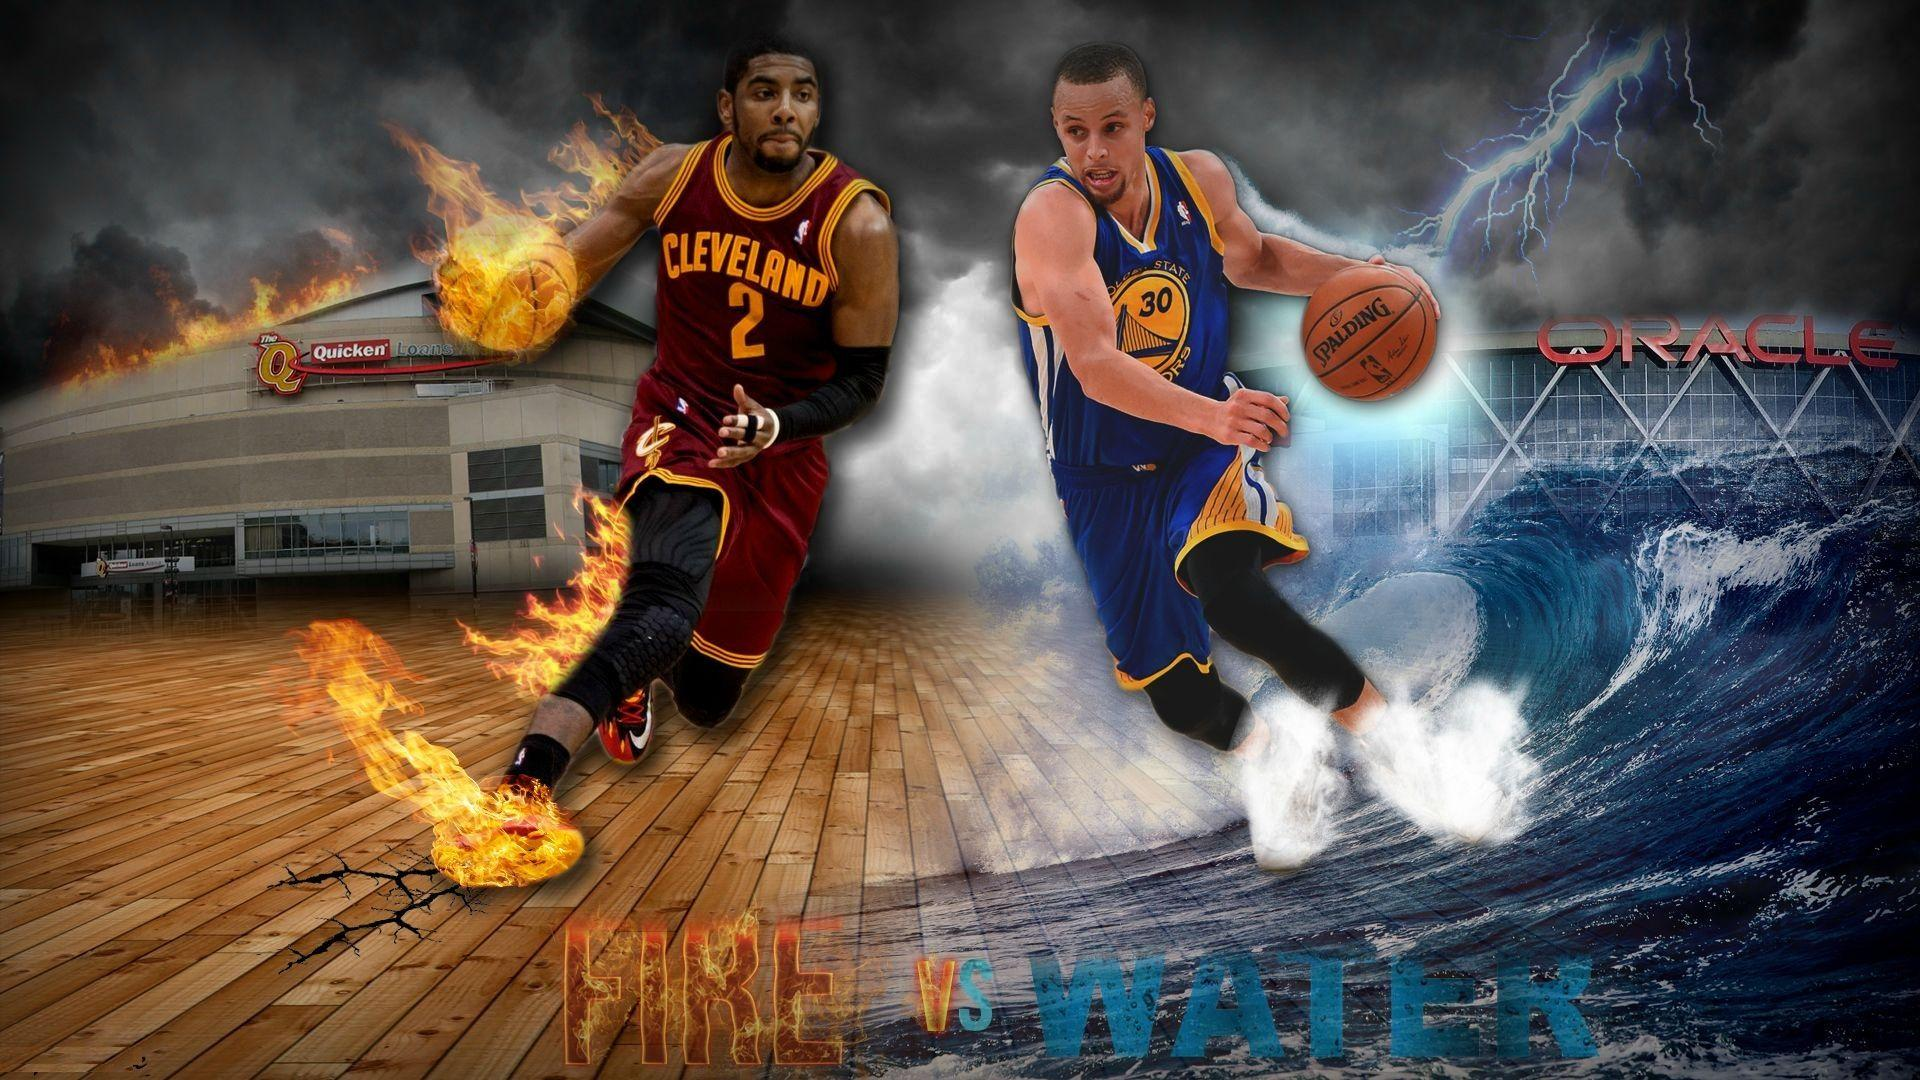 4ed34be1aea6 Stephen Curry And Kyrie Irving Wallpaper - Kyrie Irving s Top 10 .